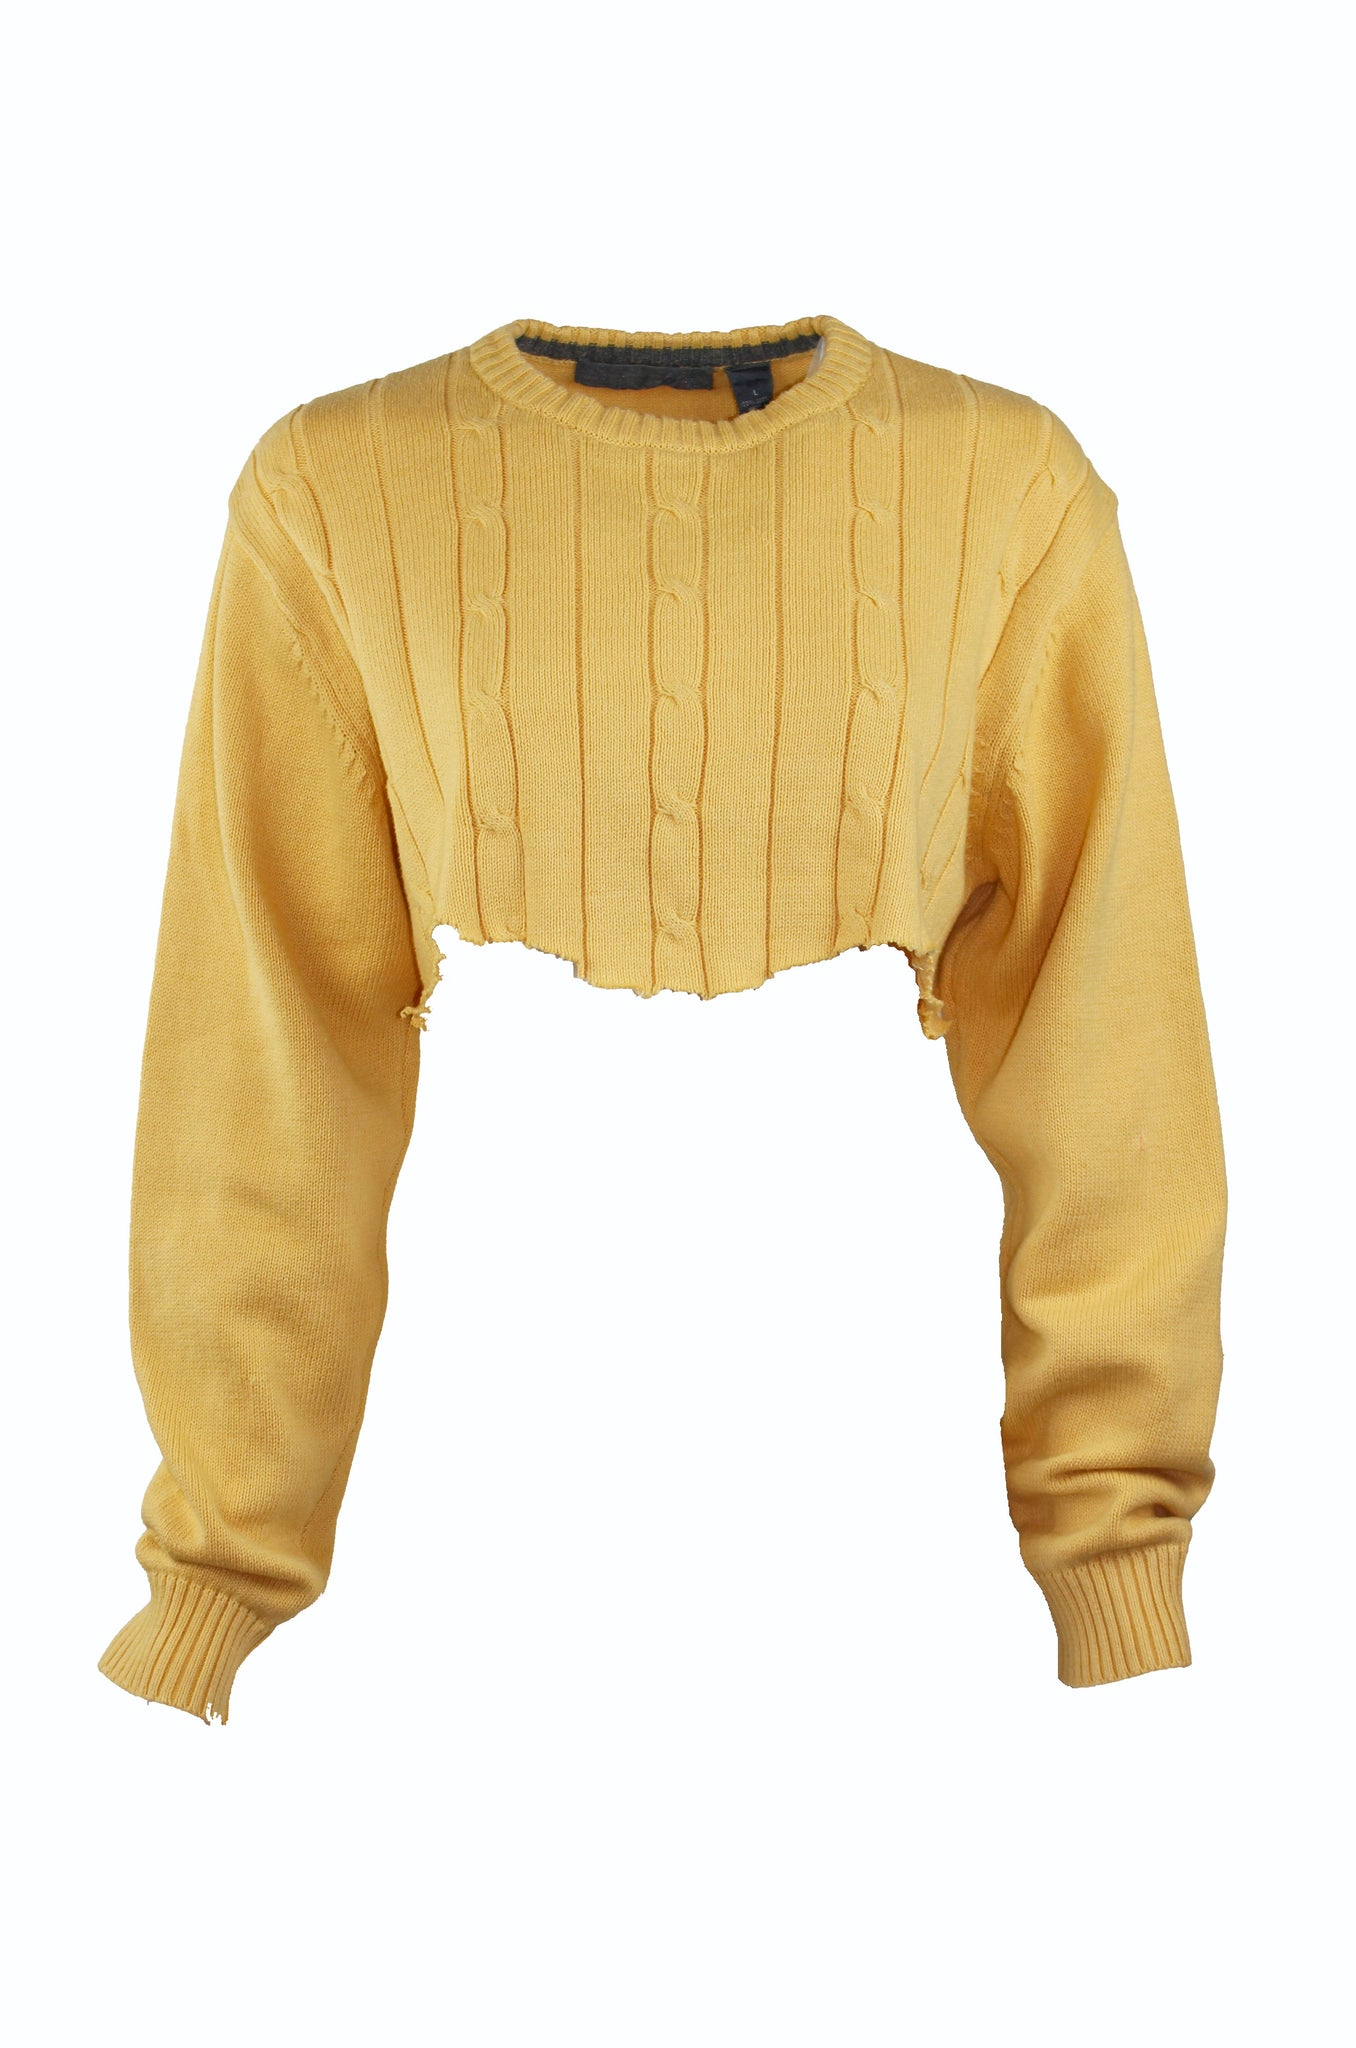 Reworked Vintage Cropped Oscar De La Renta Sweater